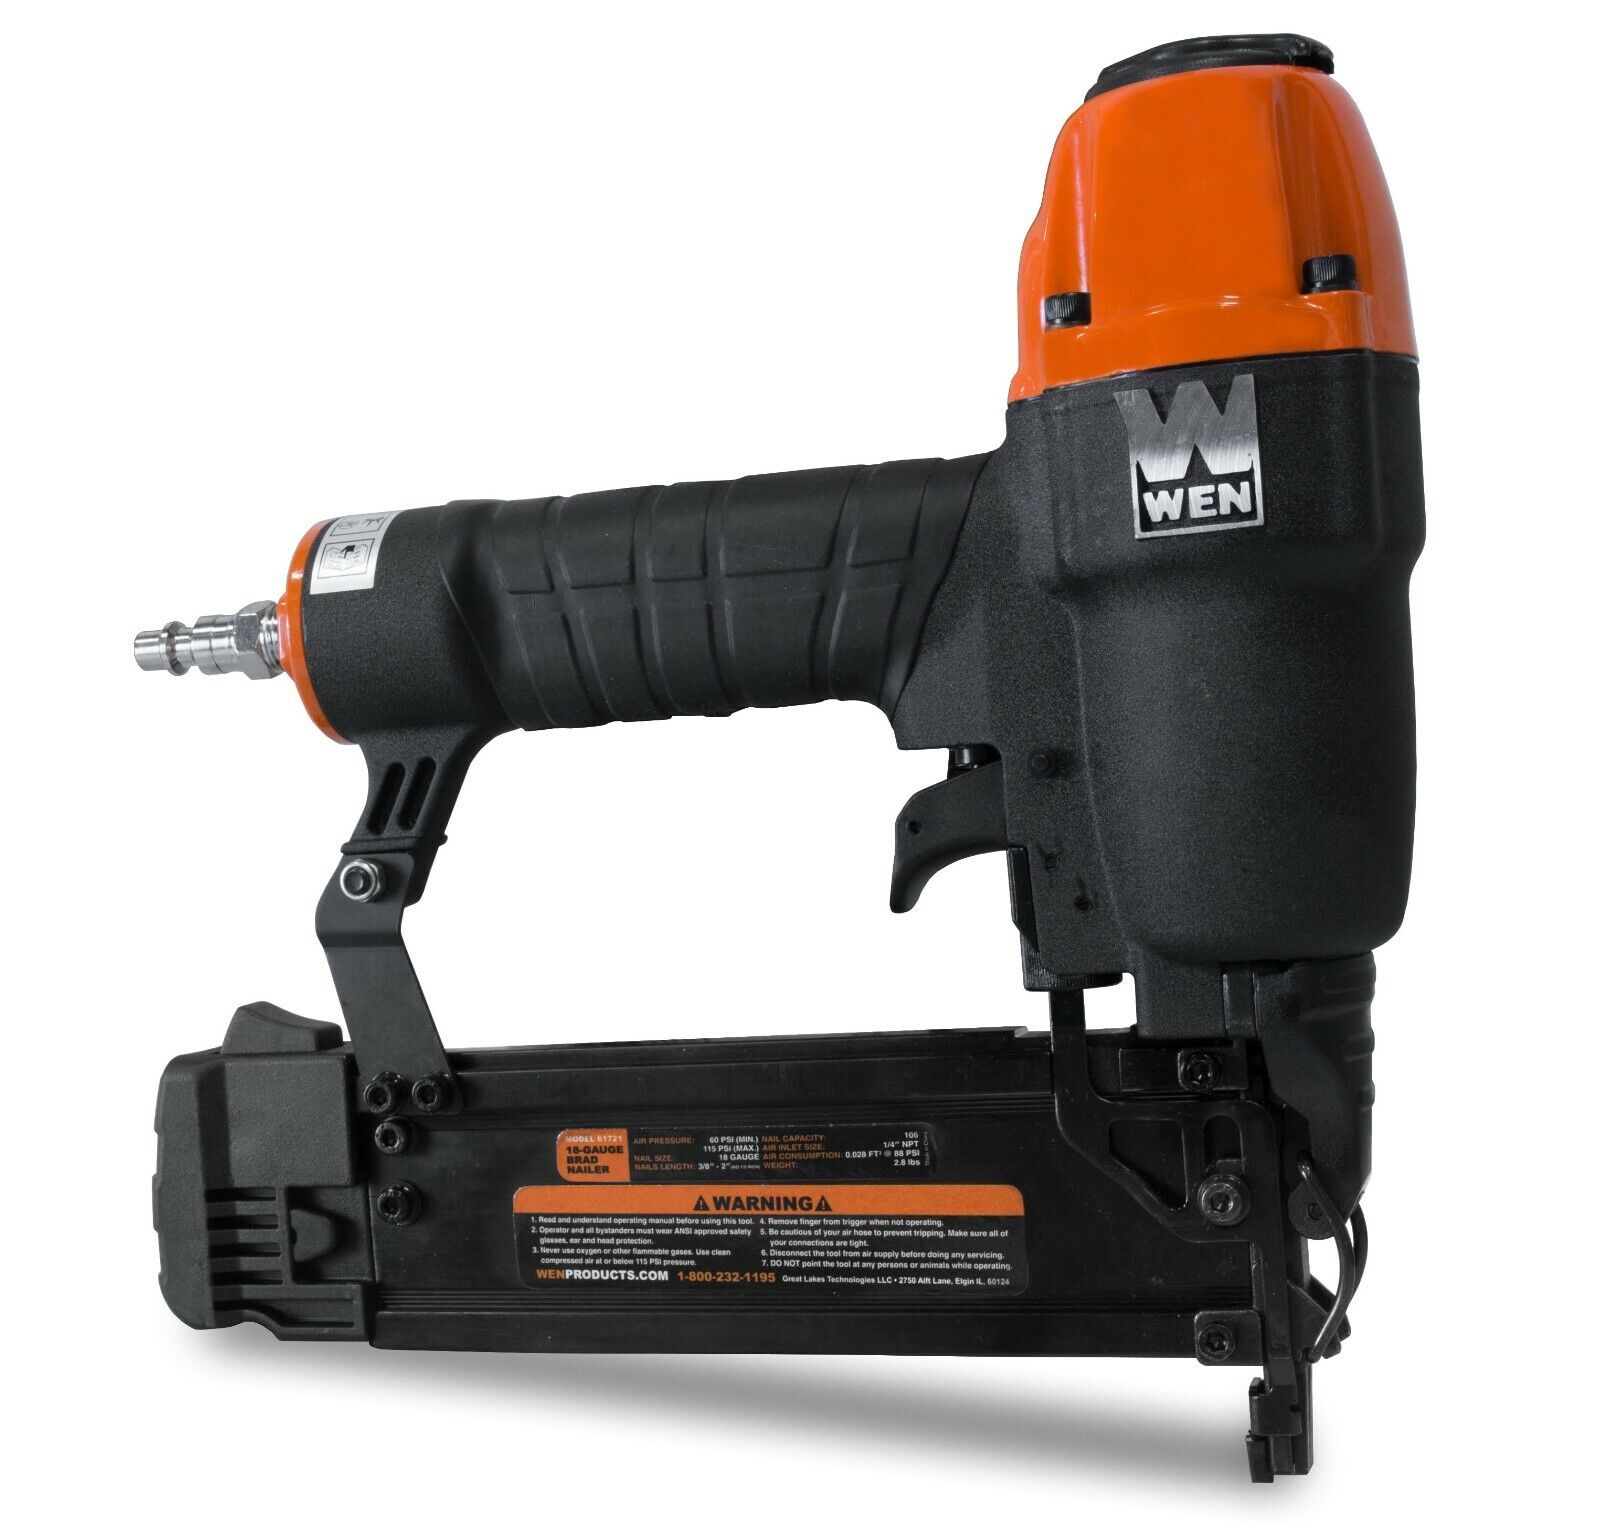 WEN 61721 18-Gauge 3/8-Inch to 2-Inch Pneumatic Brad Nailer with 2000 Nails. Available Now for 40.02